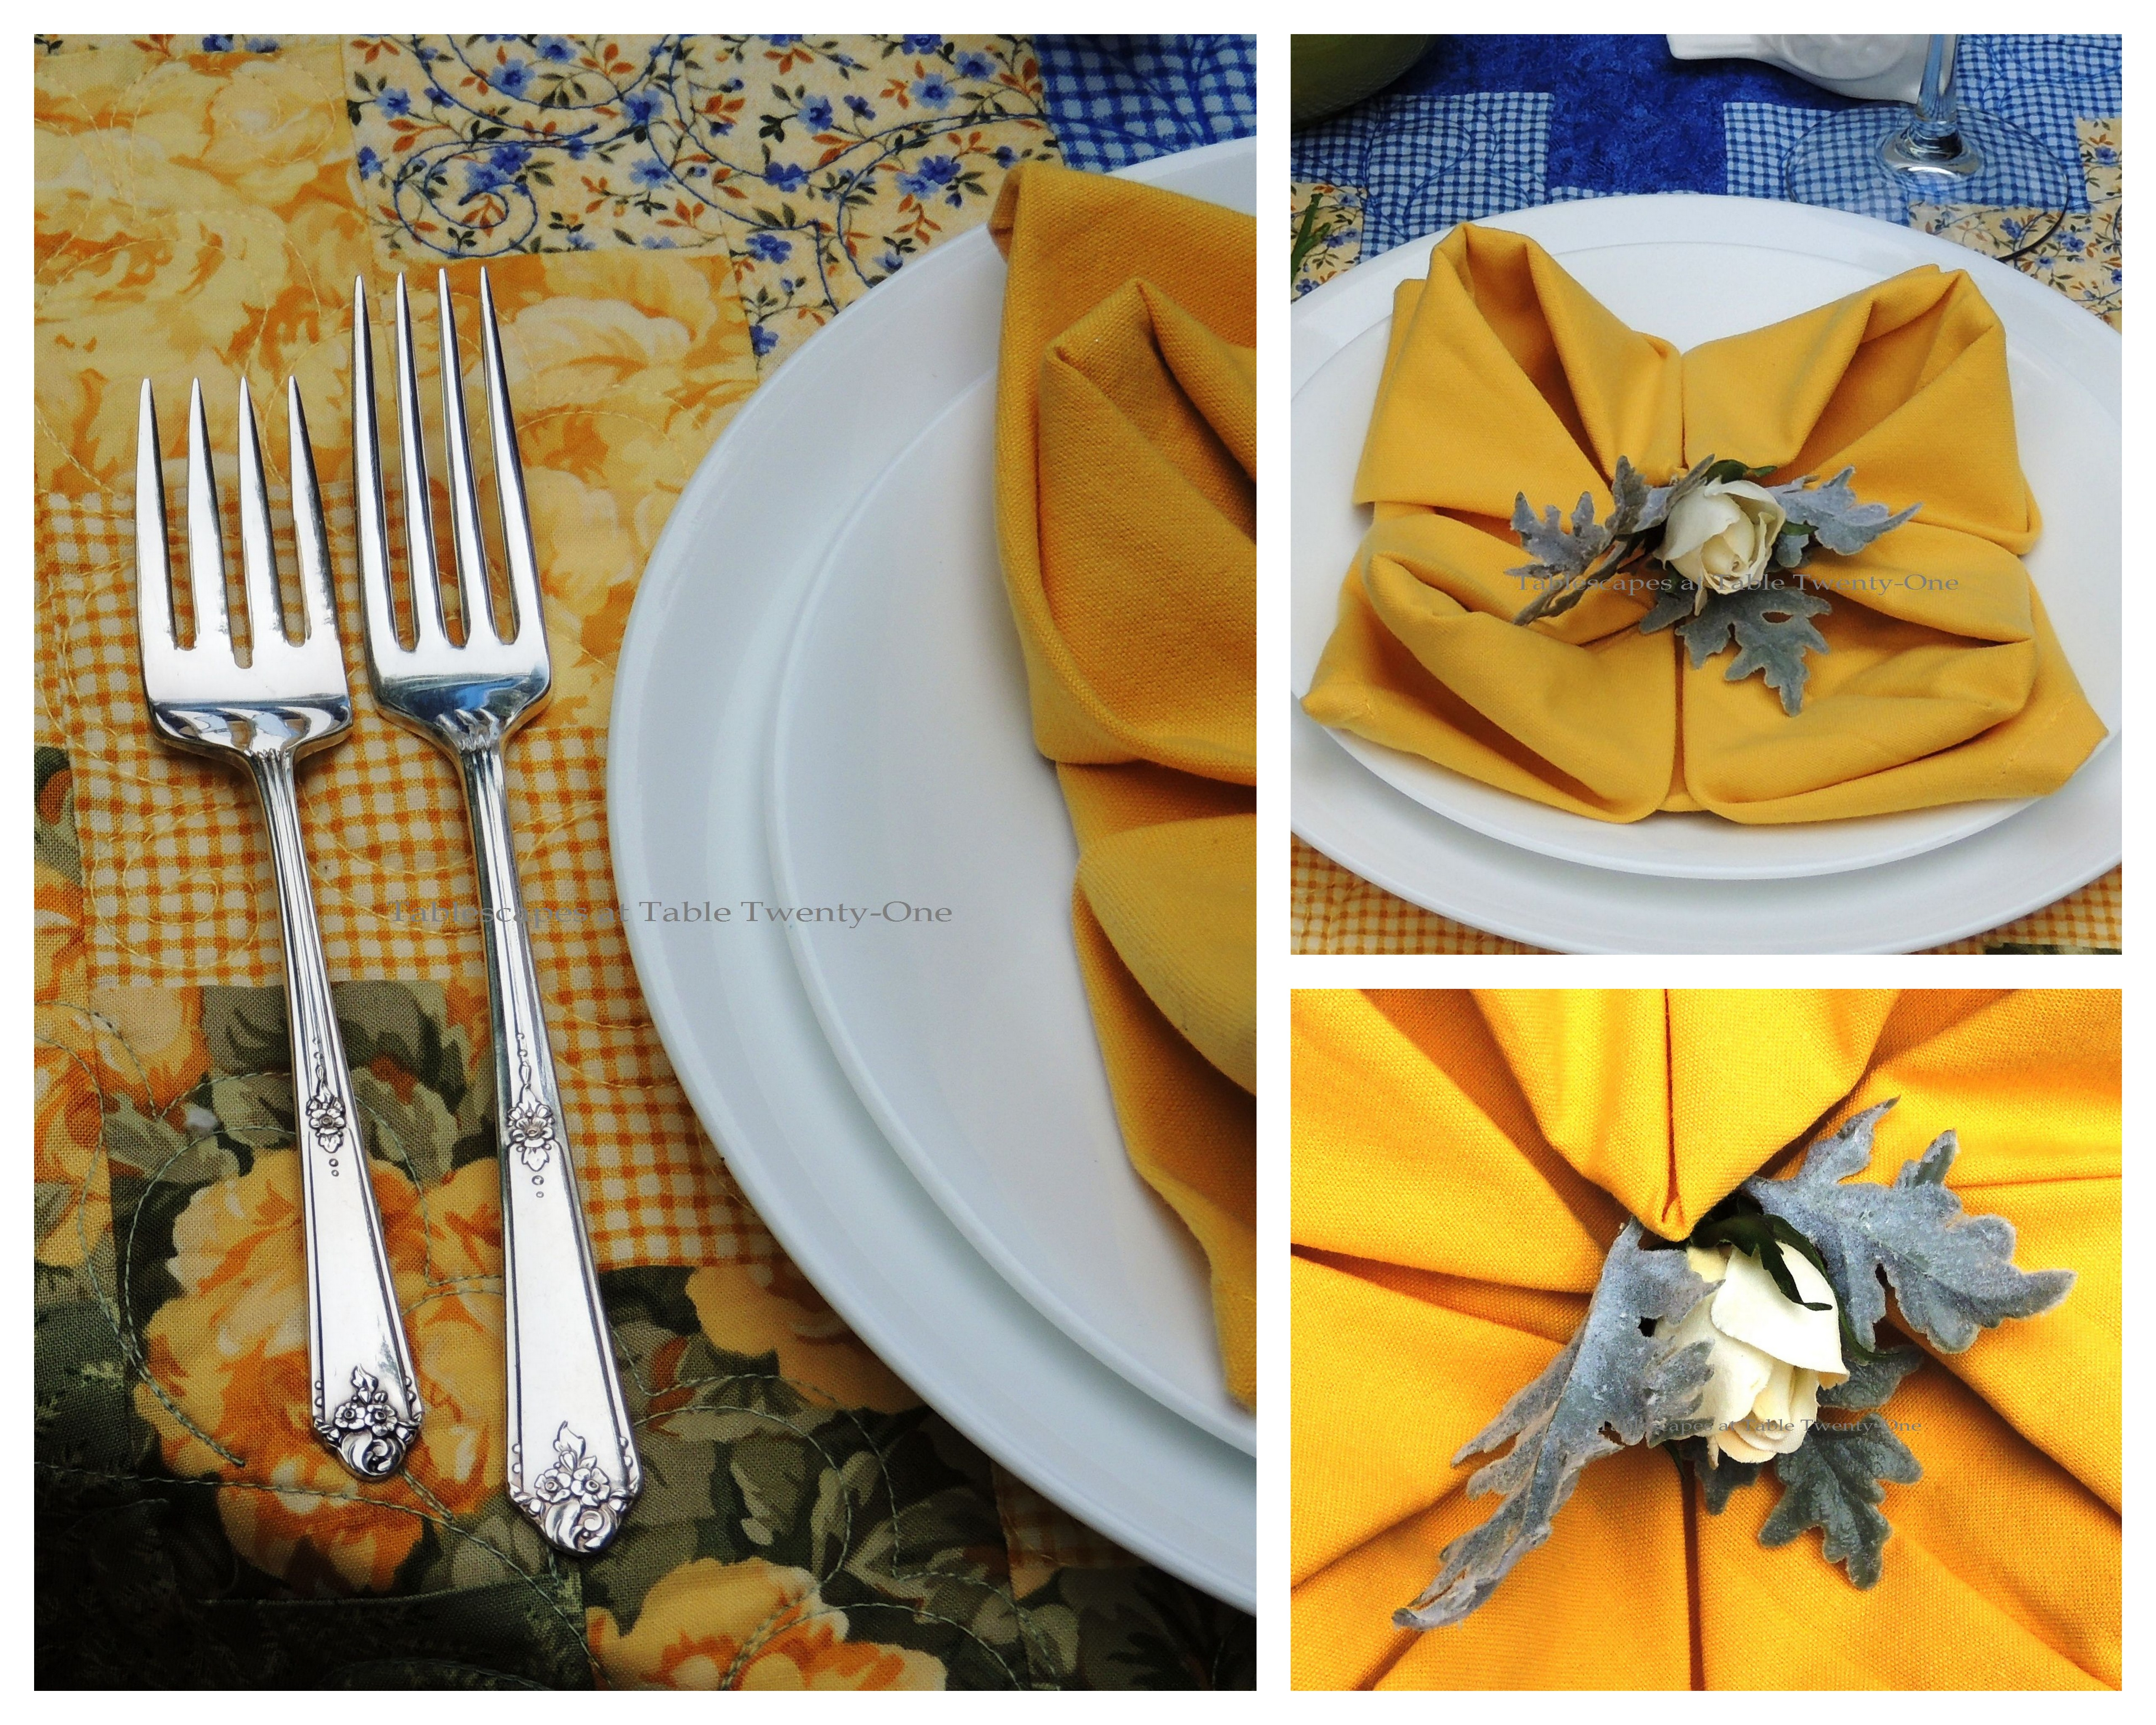 Tablescapes at Table Twenty-One, www.tabletwentyone.wordpress.com, Summer Luncheon for Two: Napkin & flatware collage